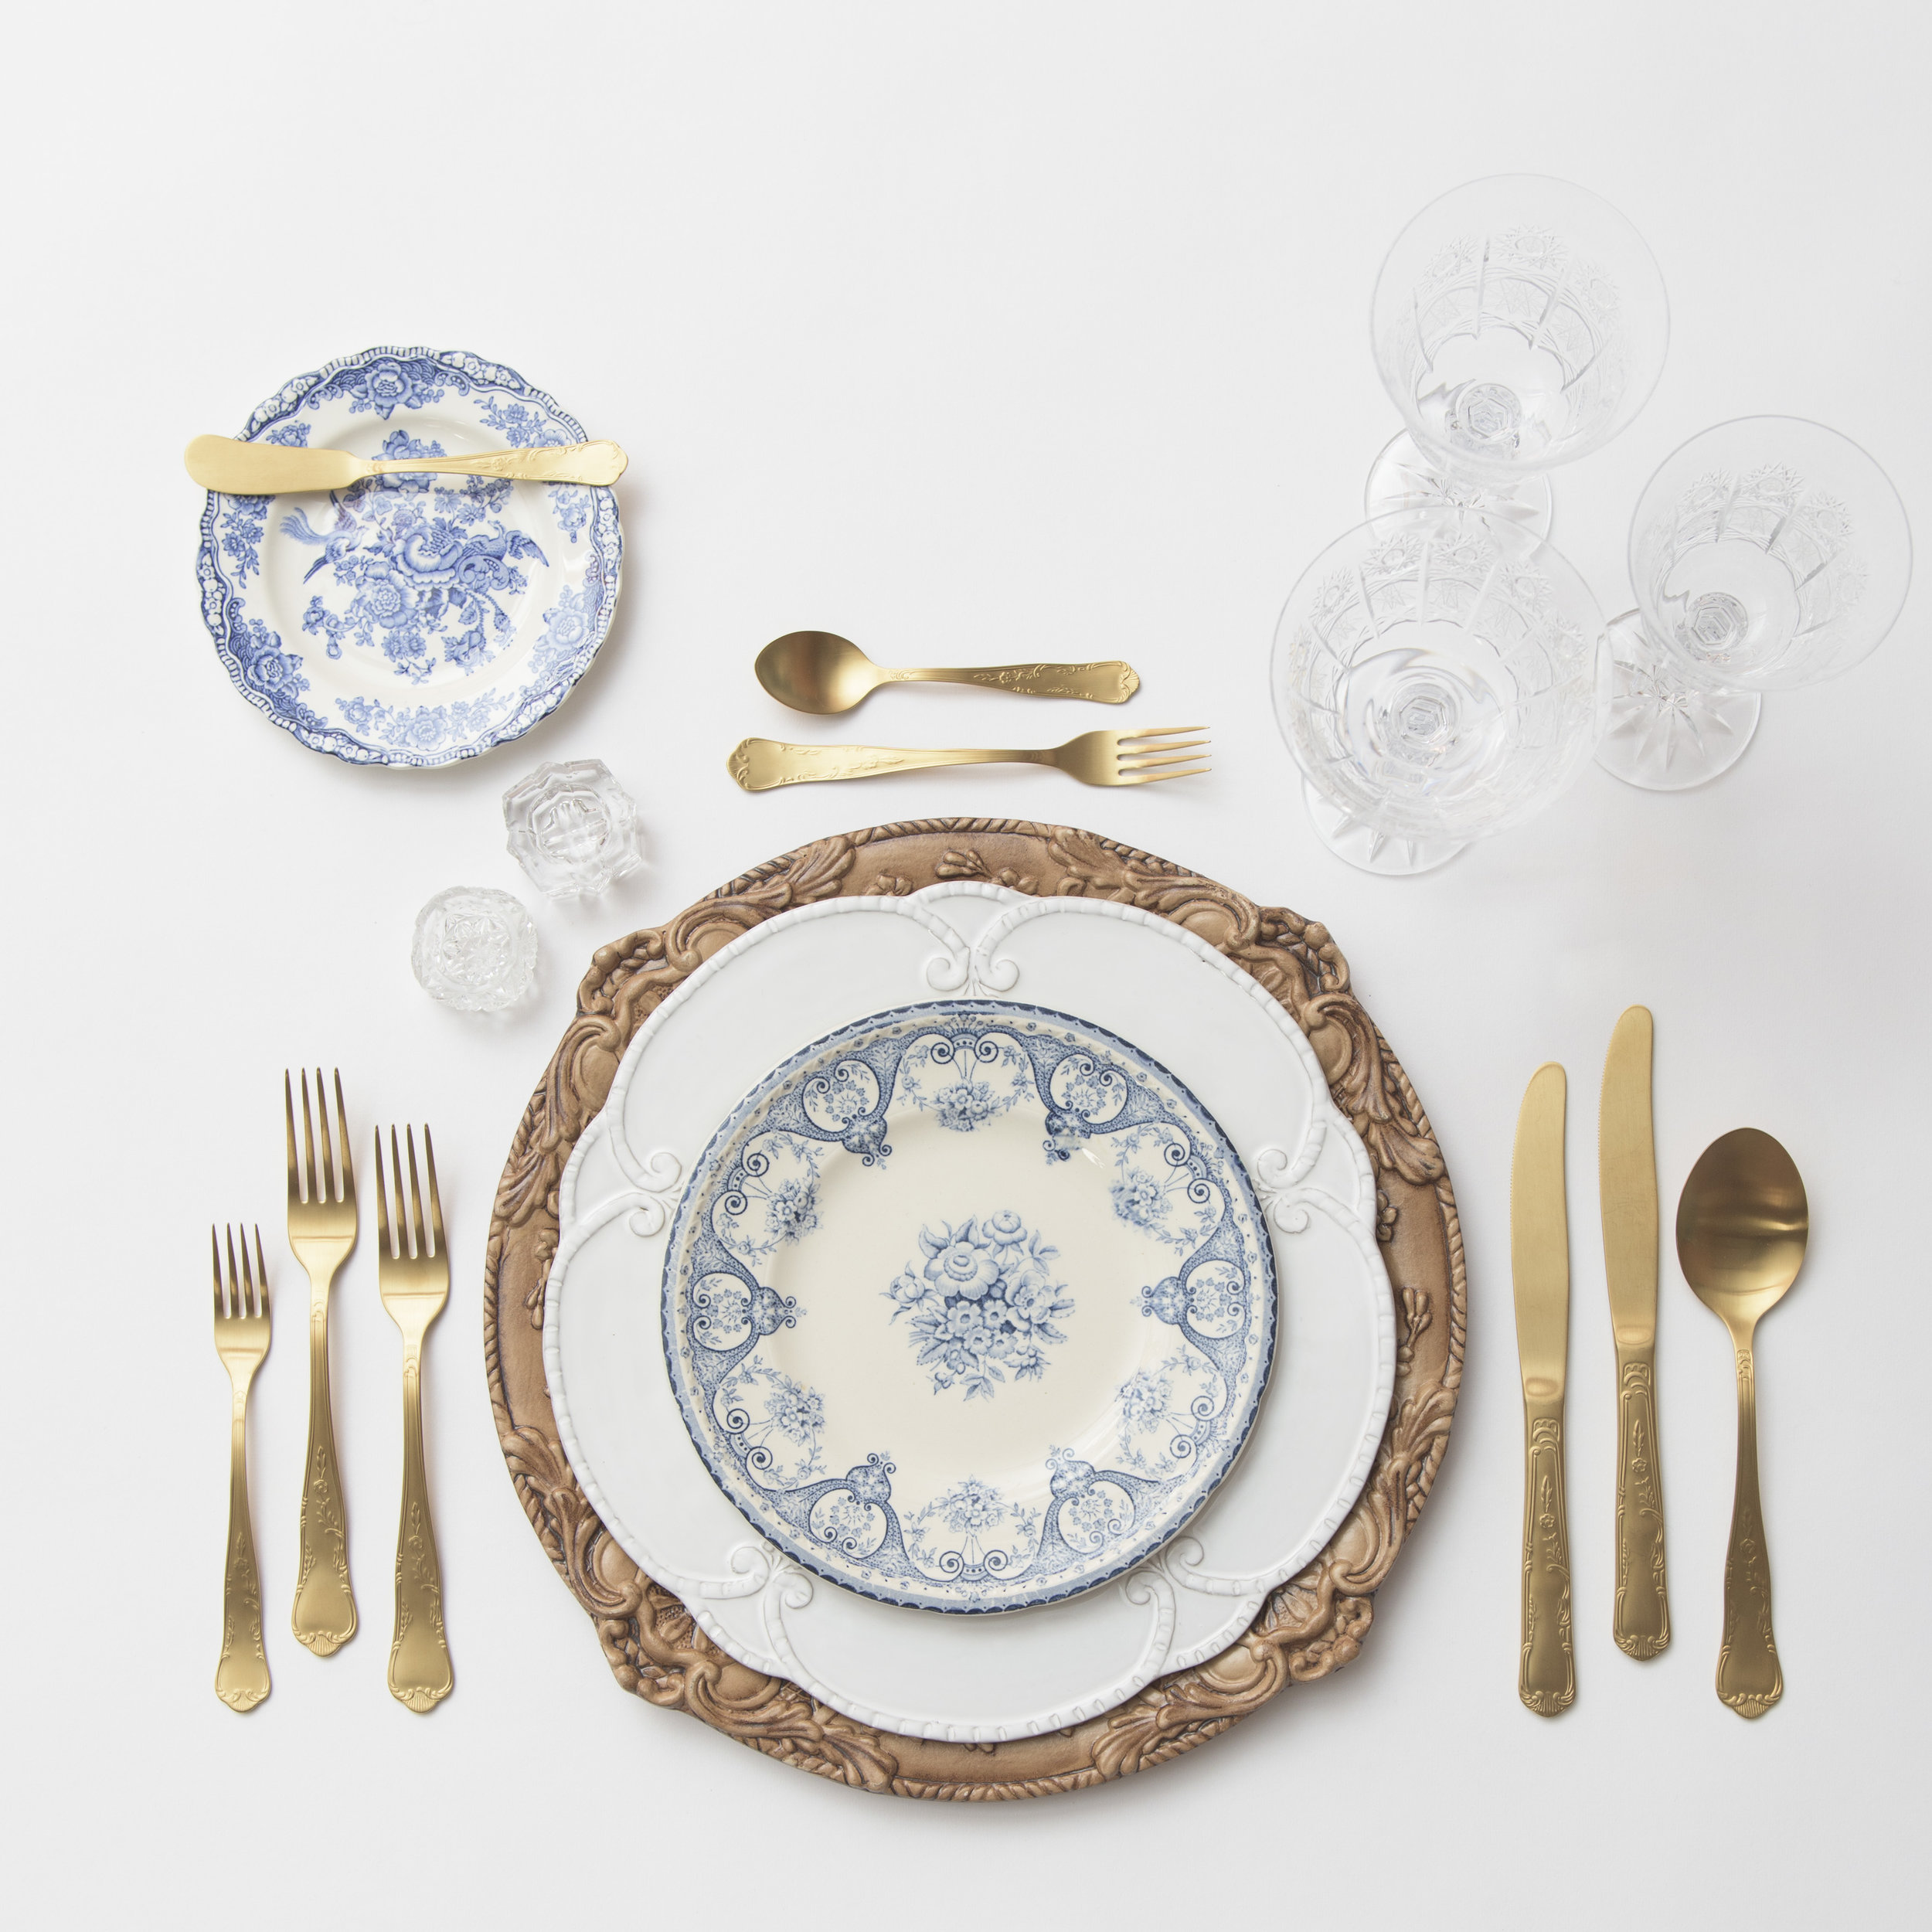 RENT: Verona Chargers in Walnut + Signature Collection Dinnerware + Blue Garden Collection Vintage China + Chateau Flatware in Matte Gold + Czech Crystal Stemware + Antique Crystal Salt Cellars   SHOP: Verona Chargers in Walnut